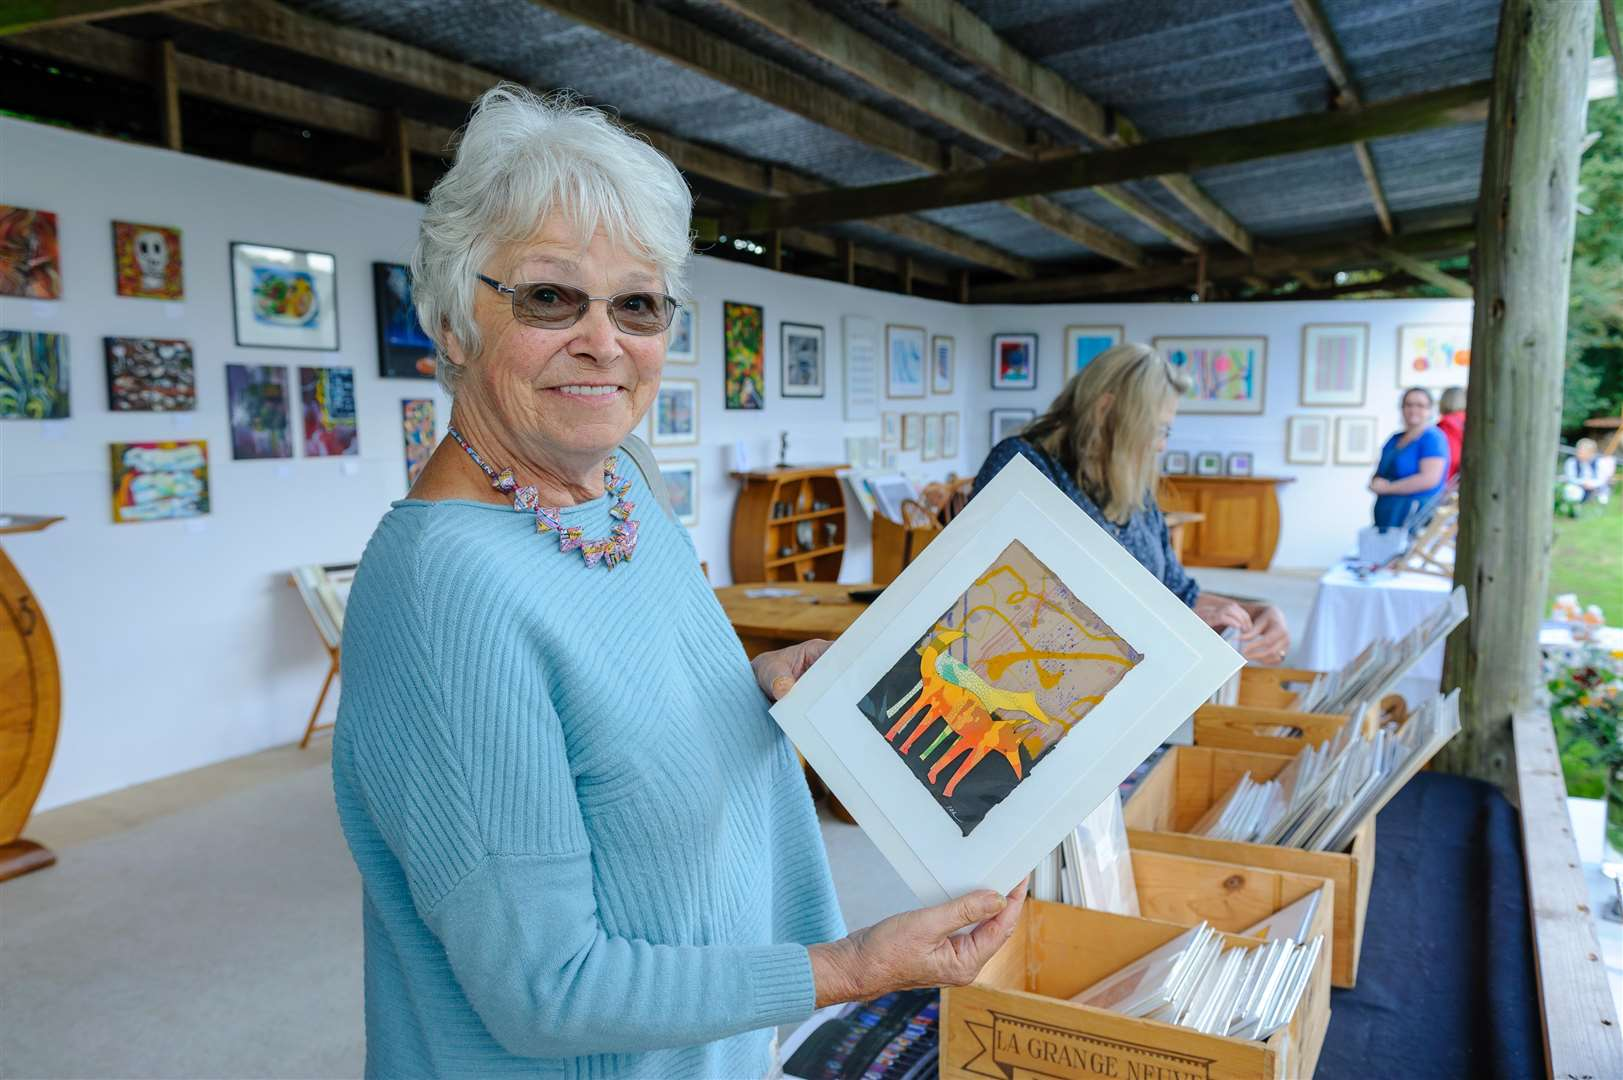 Polstead, Suffolk, 25 August 2018..Polstead Exhibition which took place over the bank holiday..Held in the grounds of Maria Martin's Cottage, artists and makers will be showcasing their wares from furniture to bespoke bird boxes. Christa Grounds looking with a print for sale...Picture by Mark Bullimore Photography. (3803120)